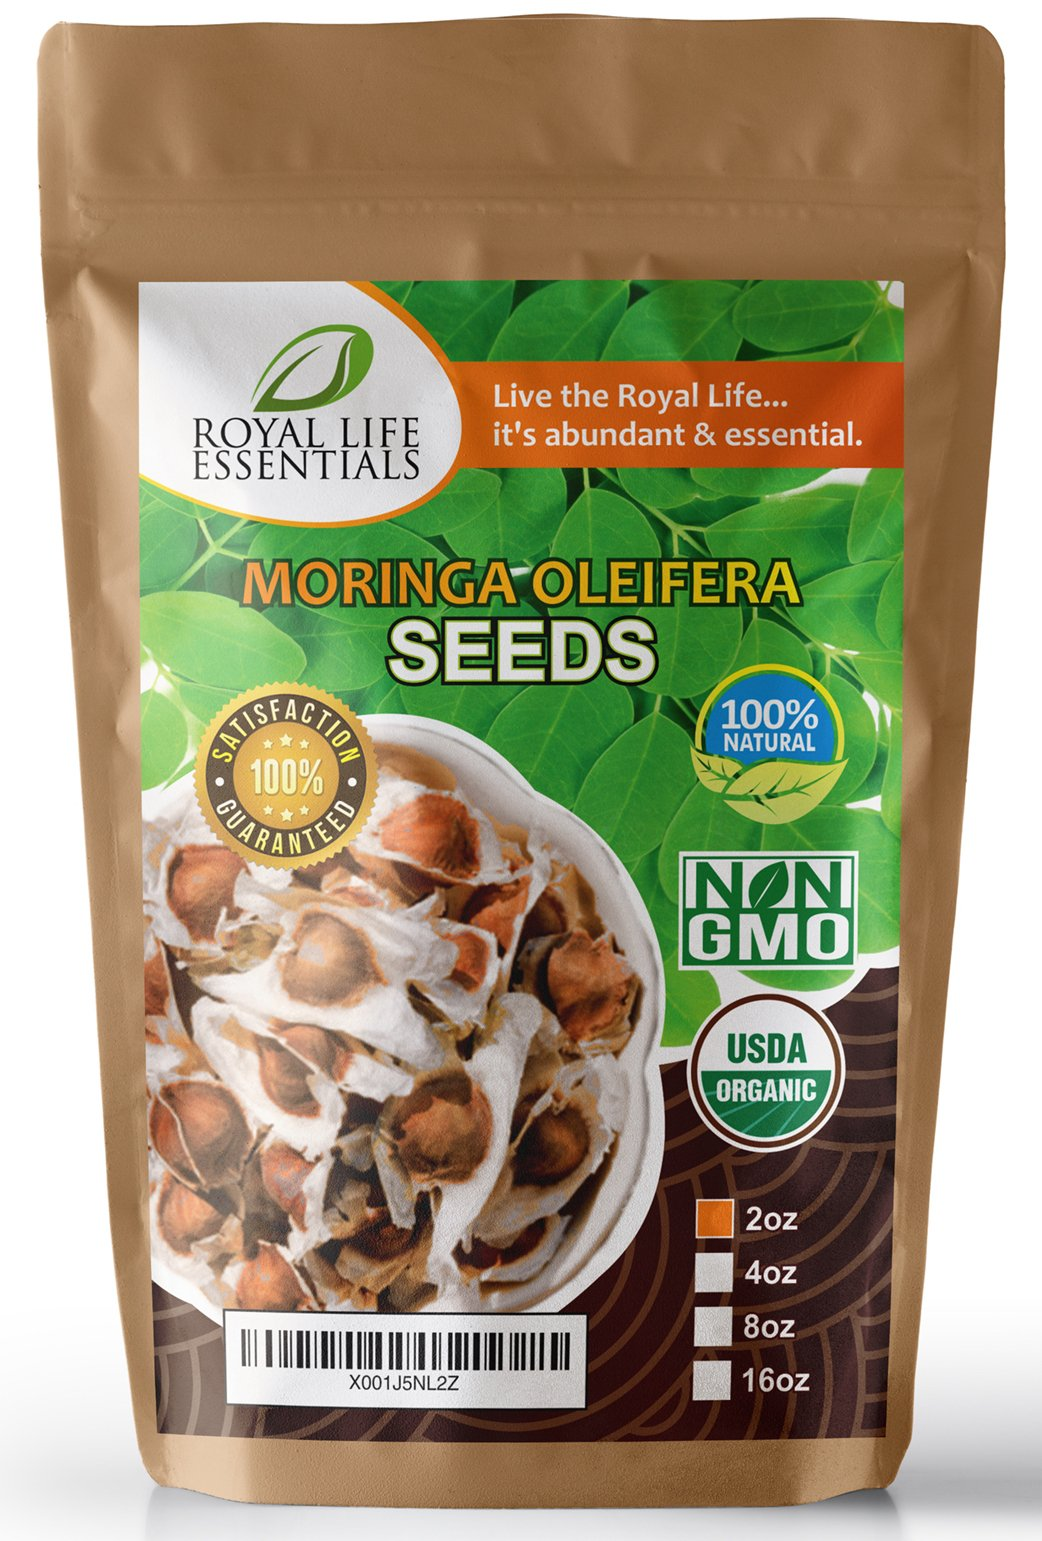 Seeds - Moringa Oleifera USDA Certified Organic Seed - (2oz) Moringa Trees are Great Indoor & Outdoor Gardening The Miracle Tree for Superfood: Make Tea, Powder, Oil, Herbal Supplements